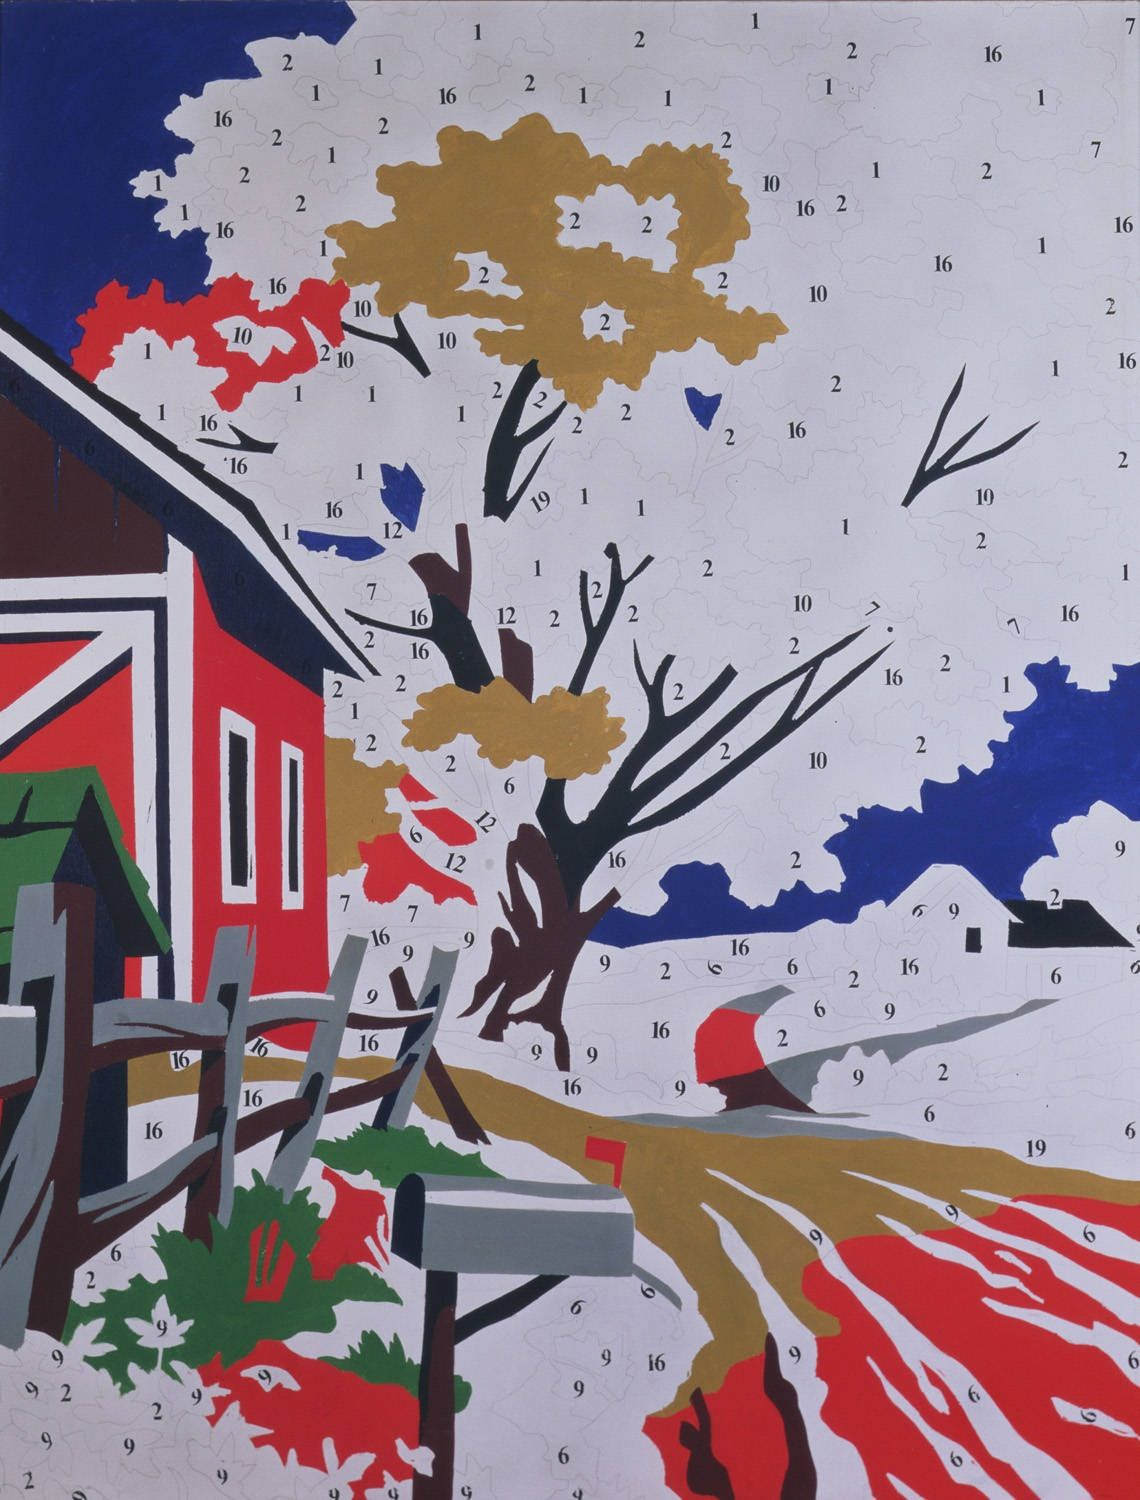 Andrew warhol painting by numbers retro paint by numbers cavetocanvas do it yourself series landscape andy warhol 1962 solutioingenieria Image collections